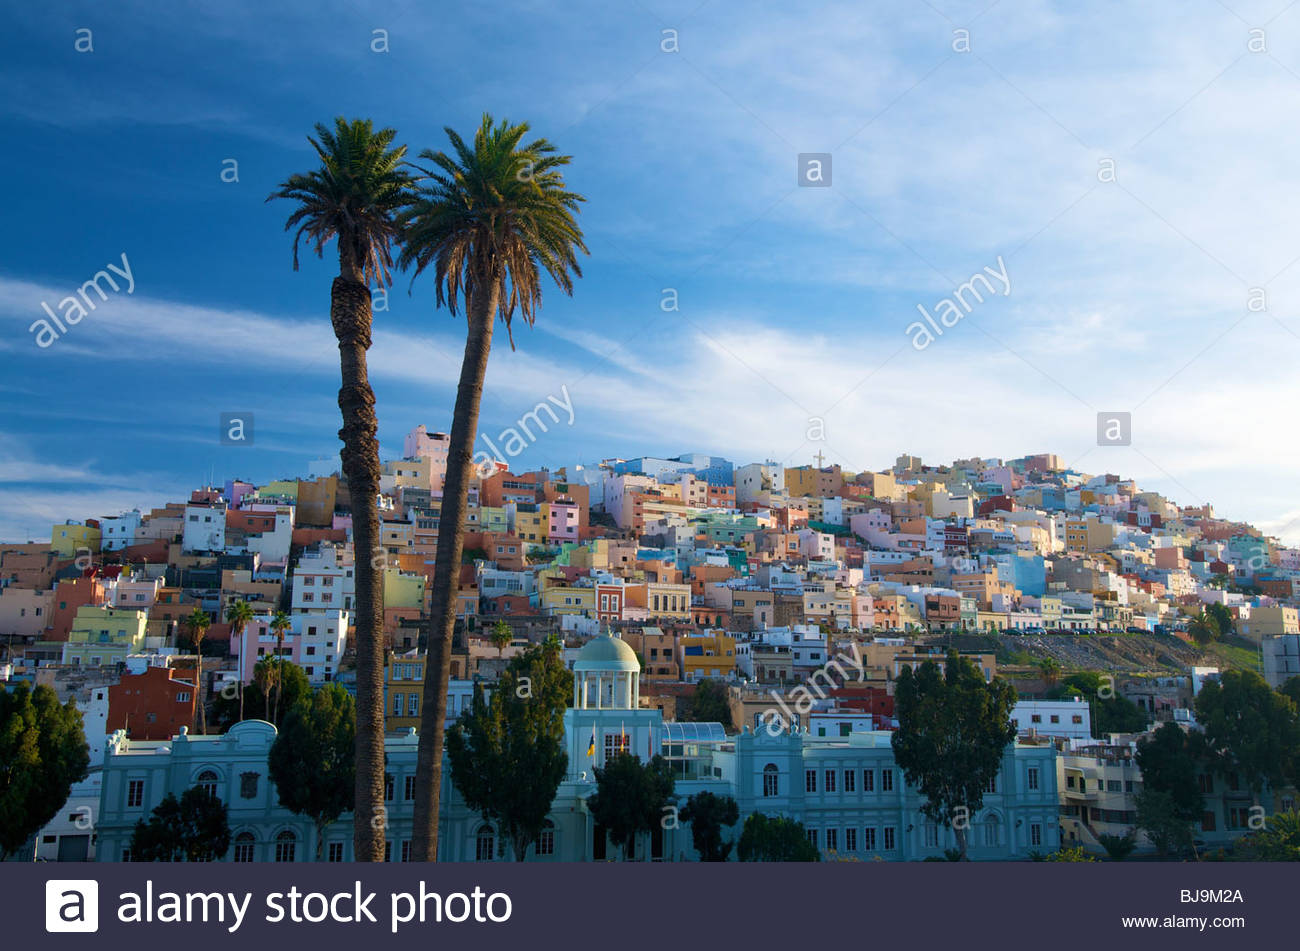 Pastel coloured houses Las Palmas Gran Canaria Canary Islands Spain - Stock Image